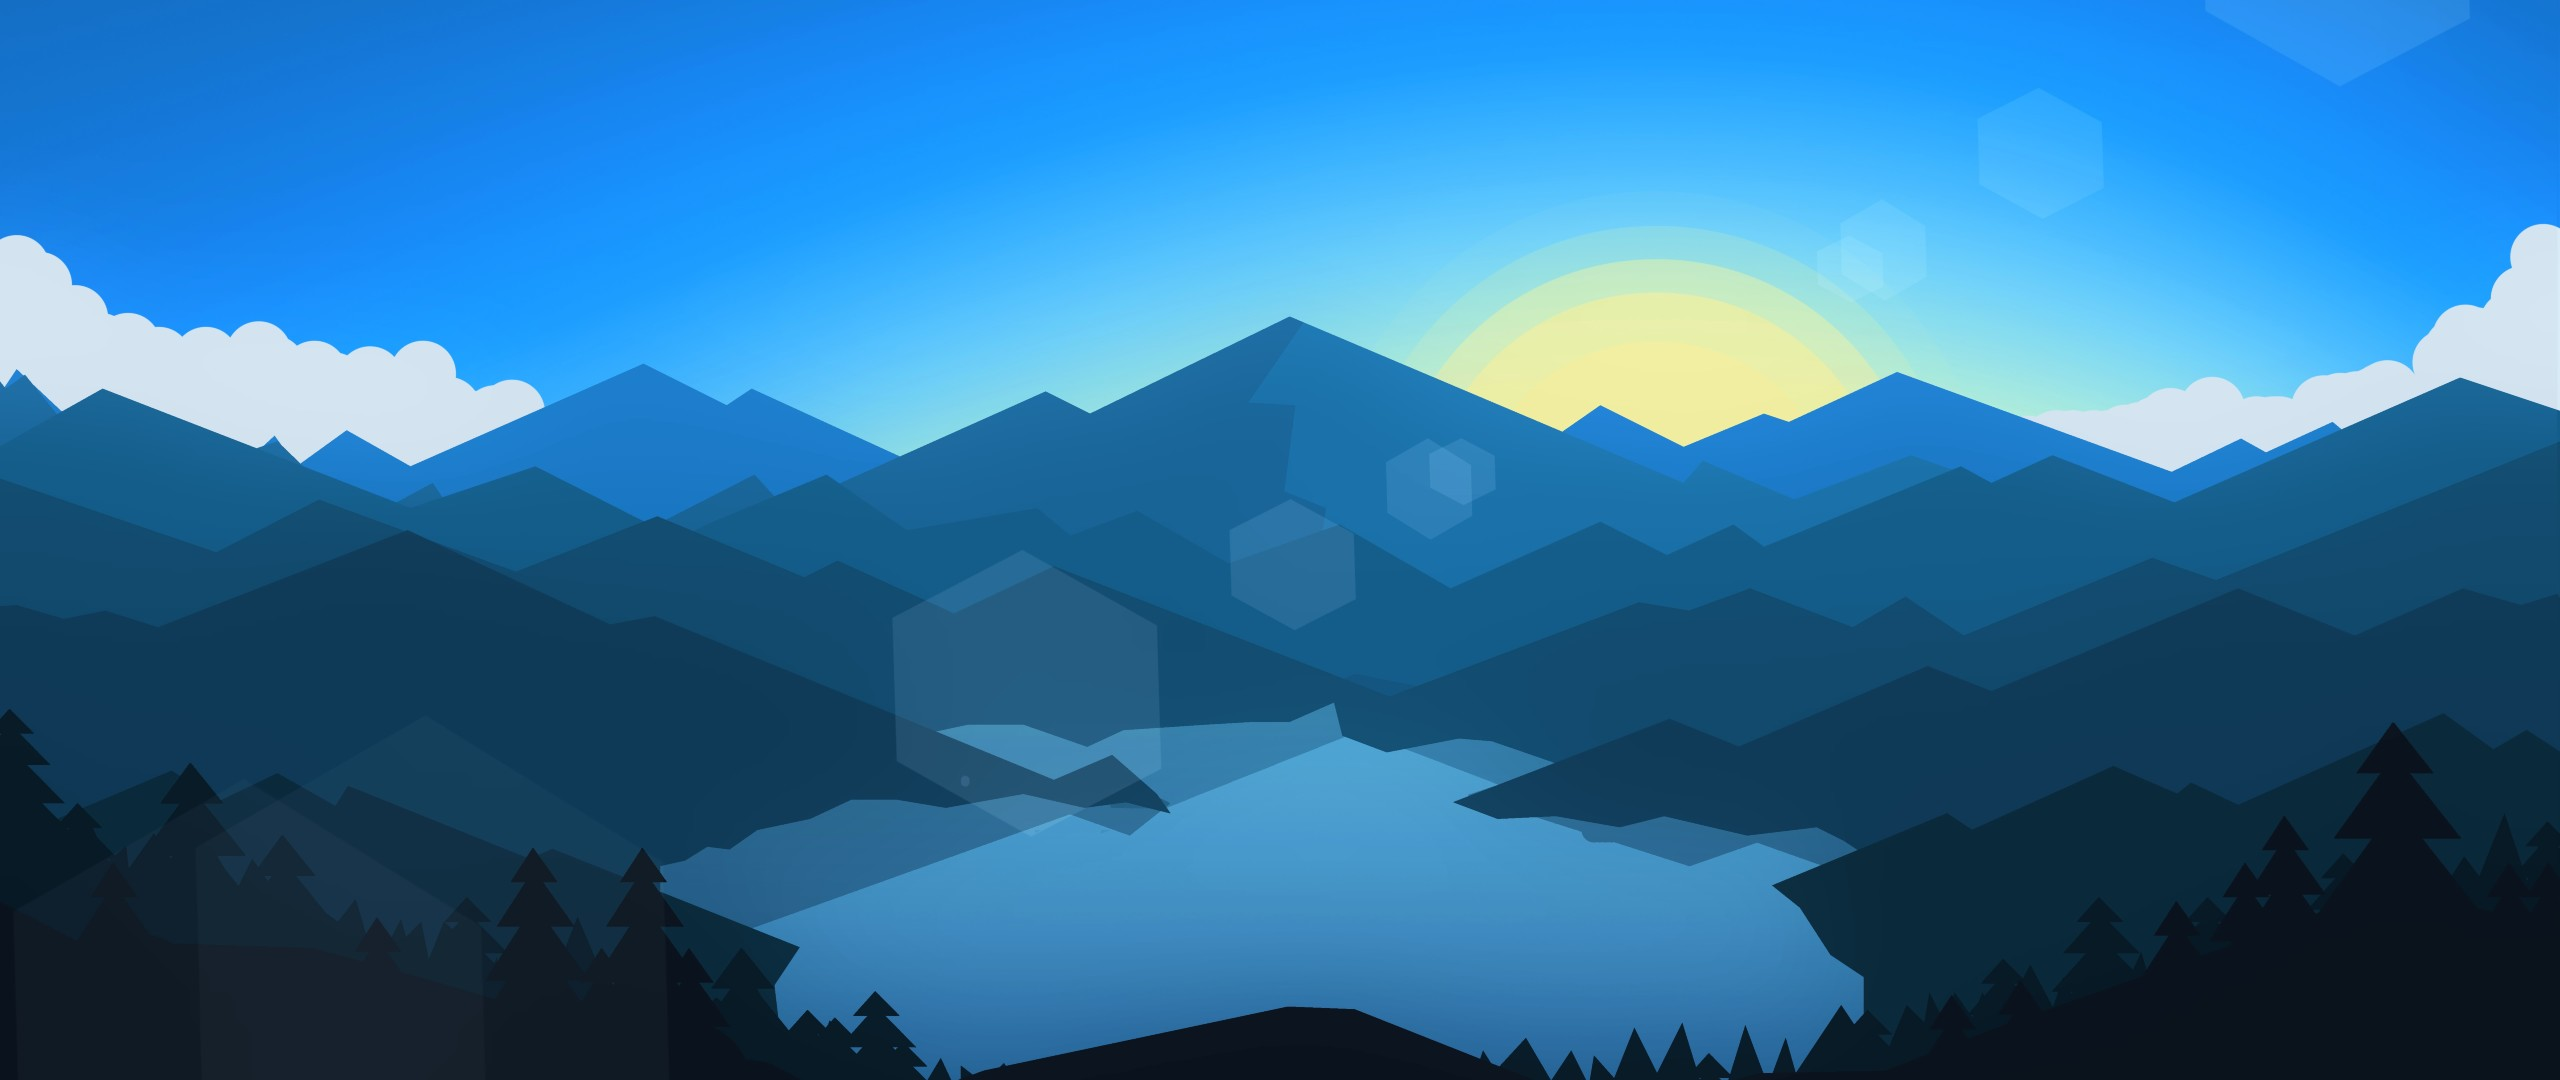 Mountains Minimalism Hd 4k Wallpaper: Forest Mountains Sunset Cool Weather Minimalism, HD 8K